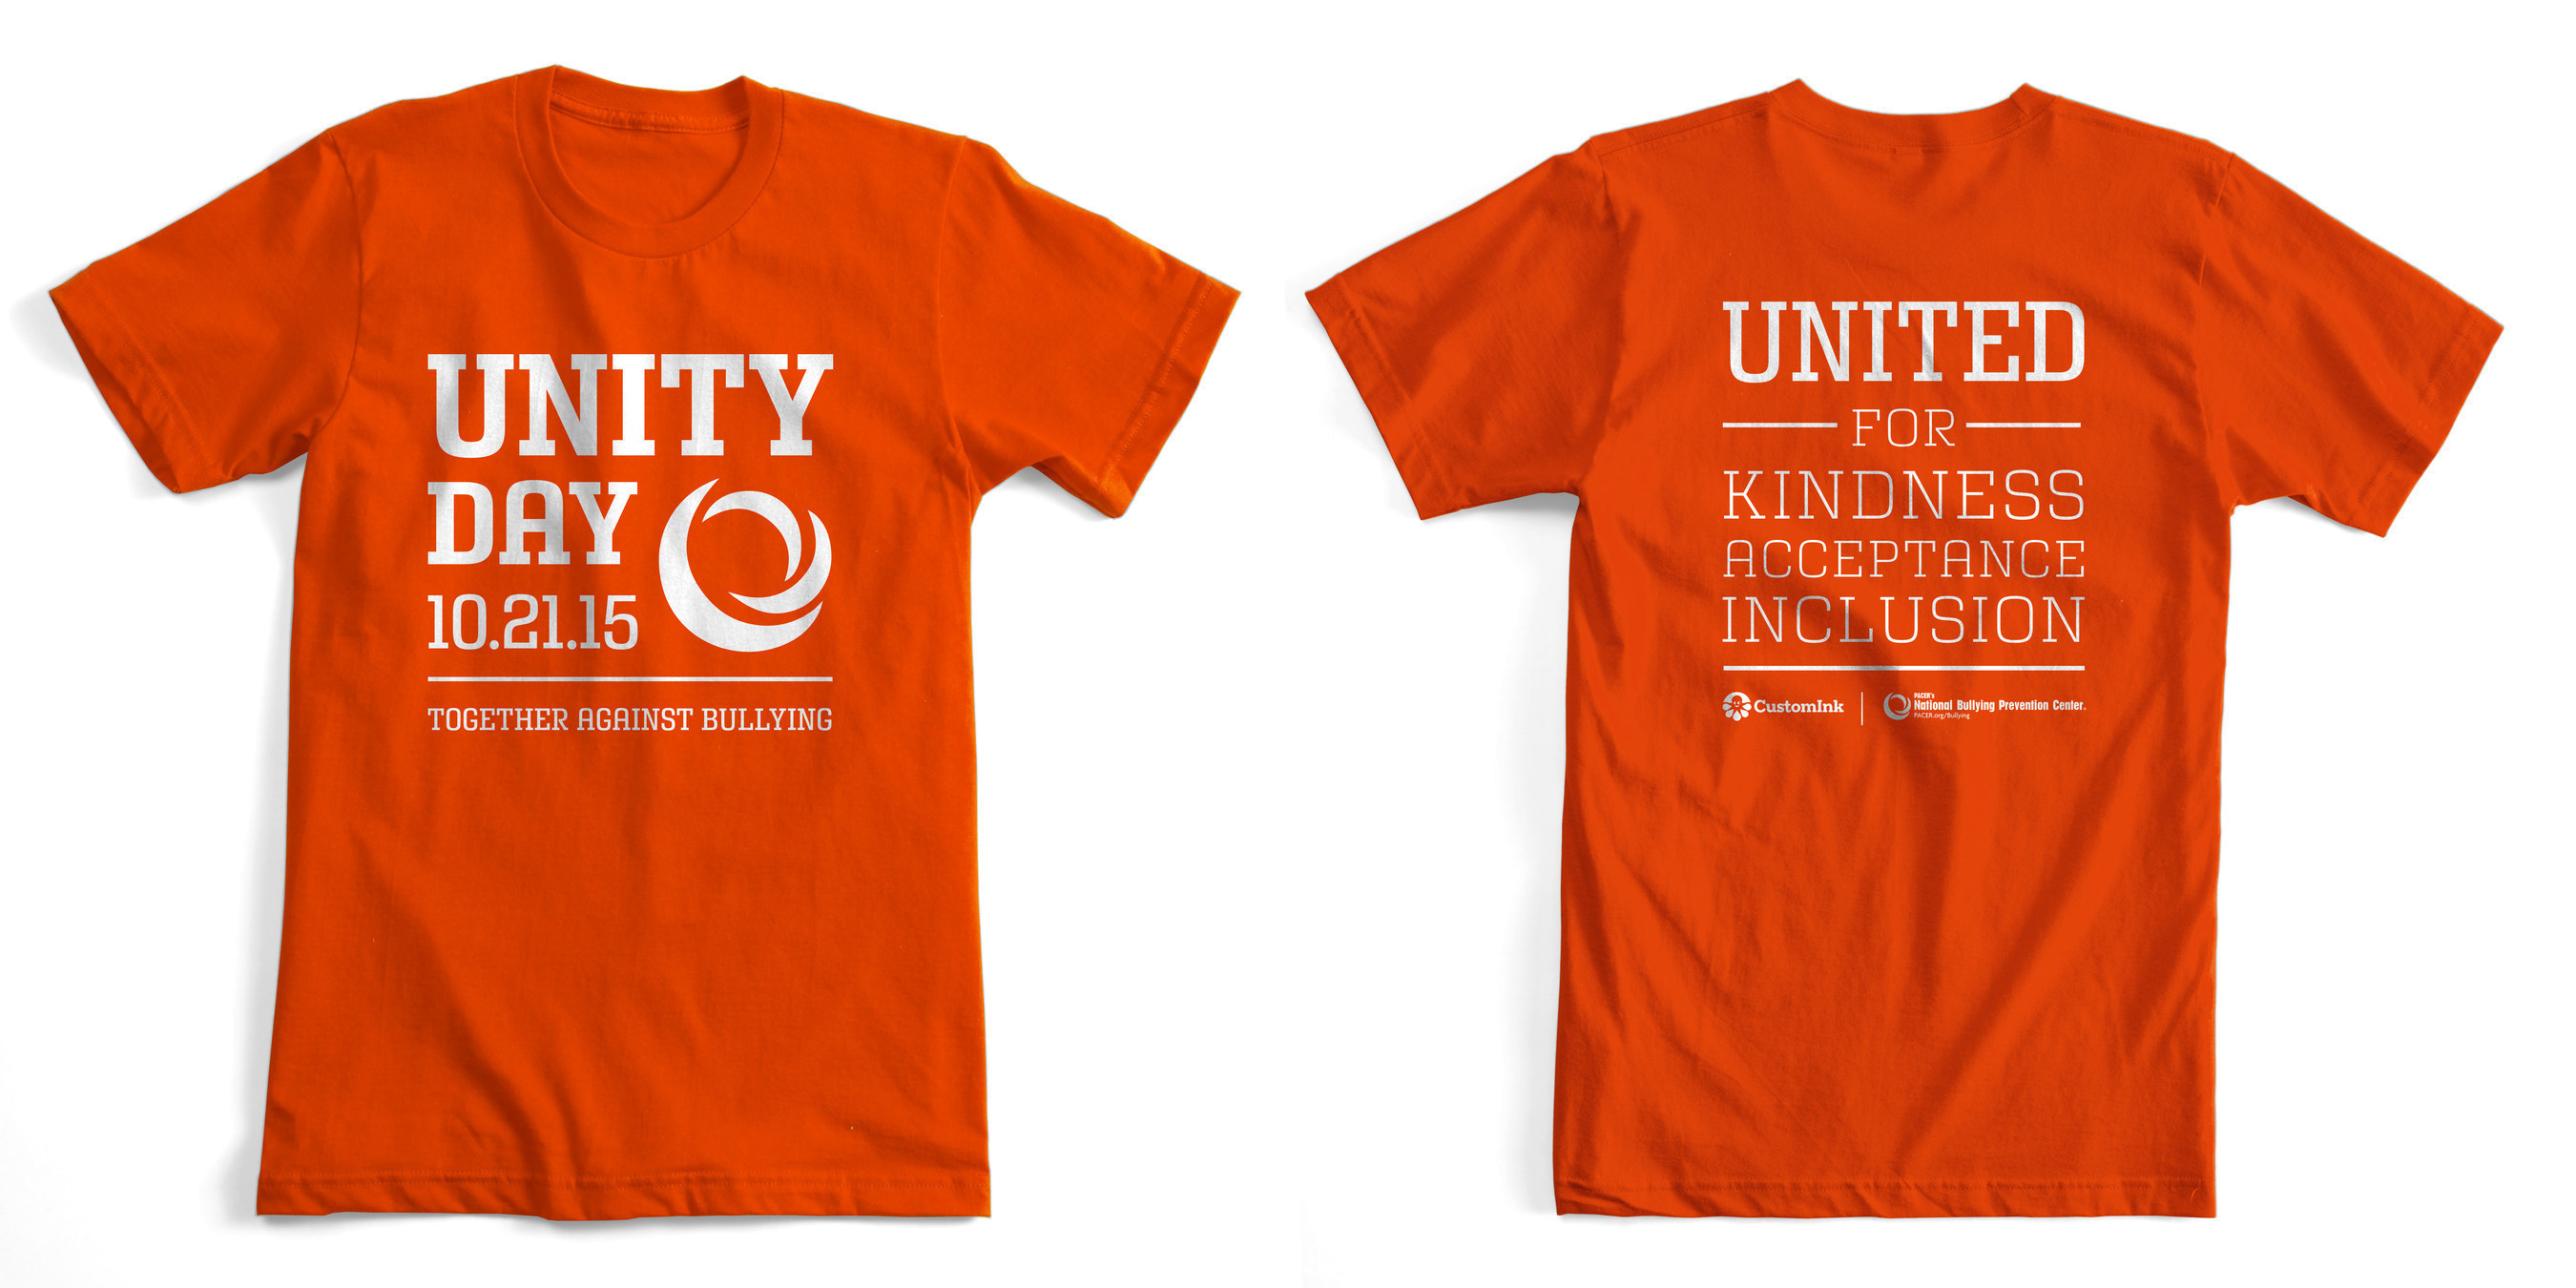 CustomInk releases t-shirt to support PACER's 2015 Unity Day